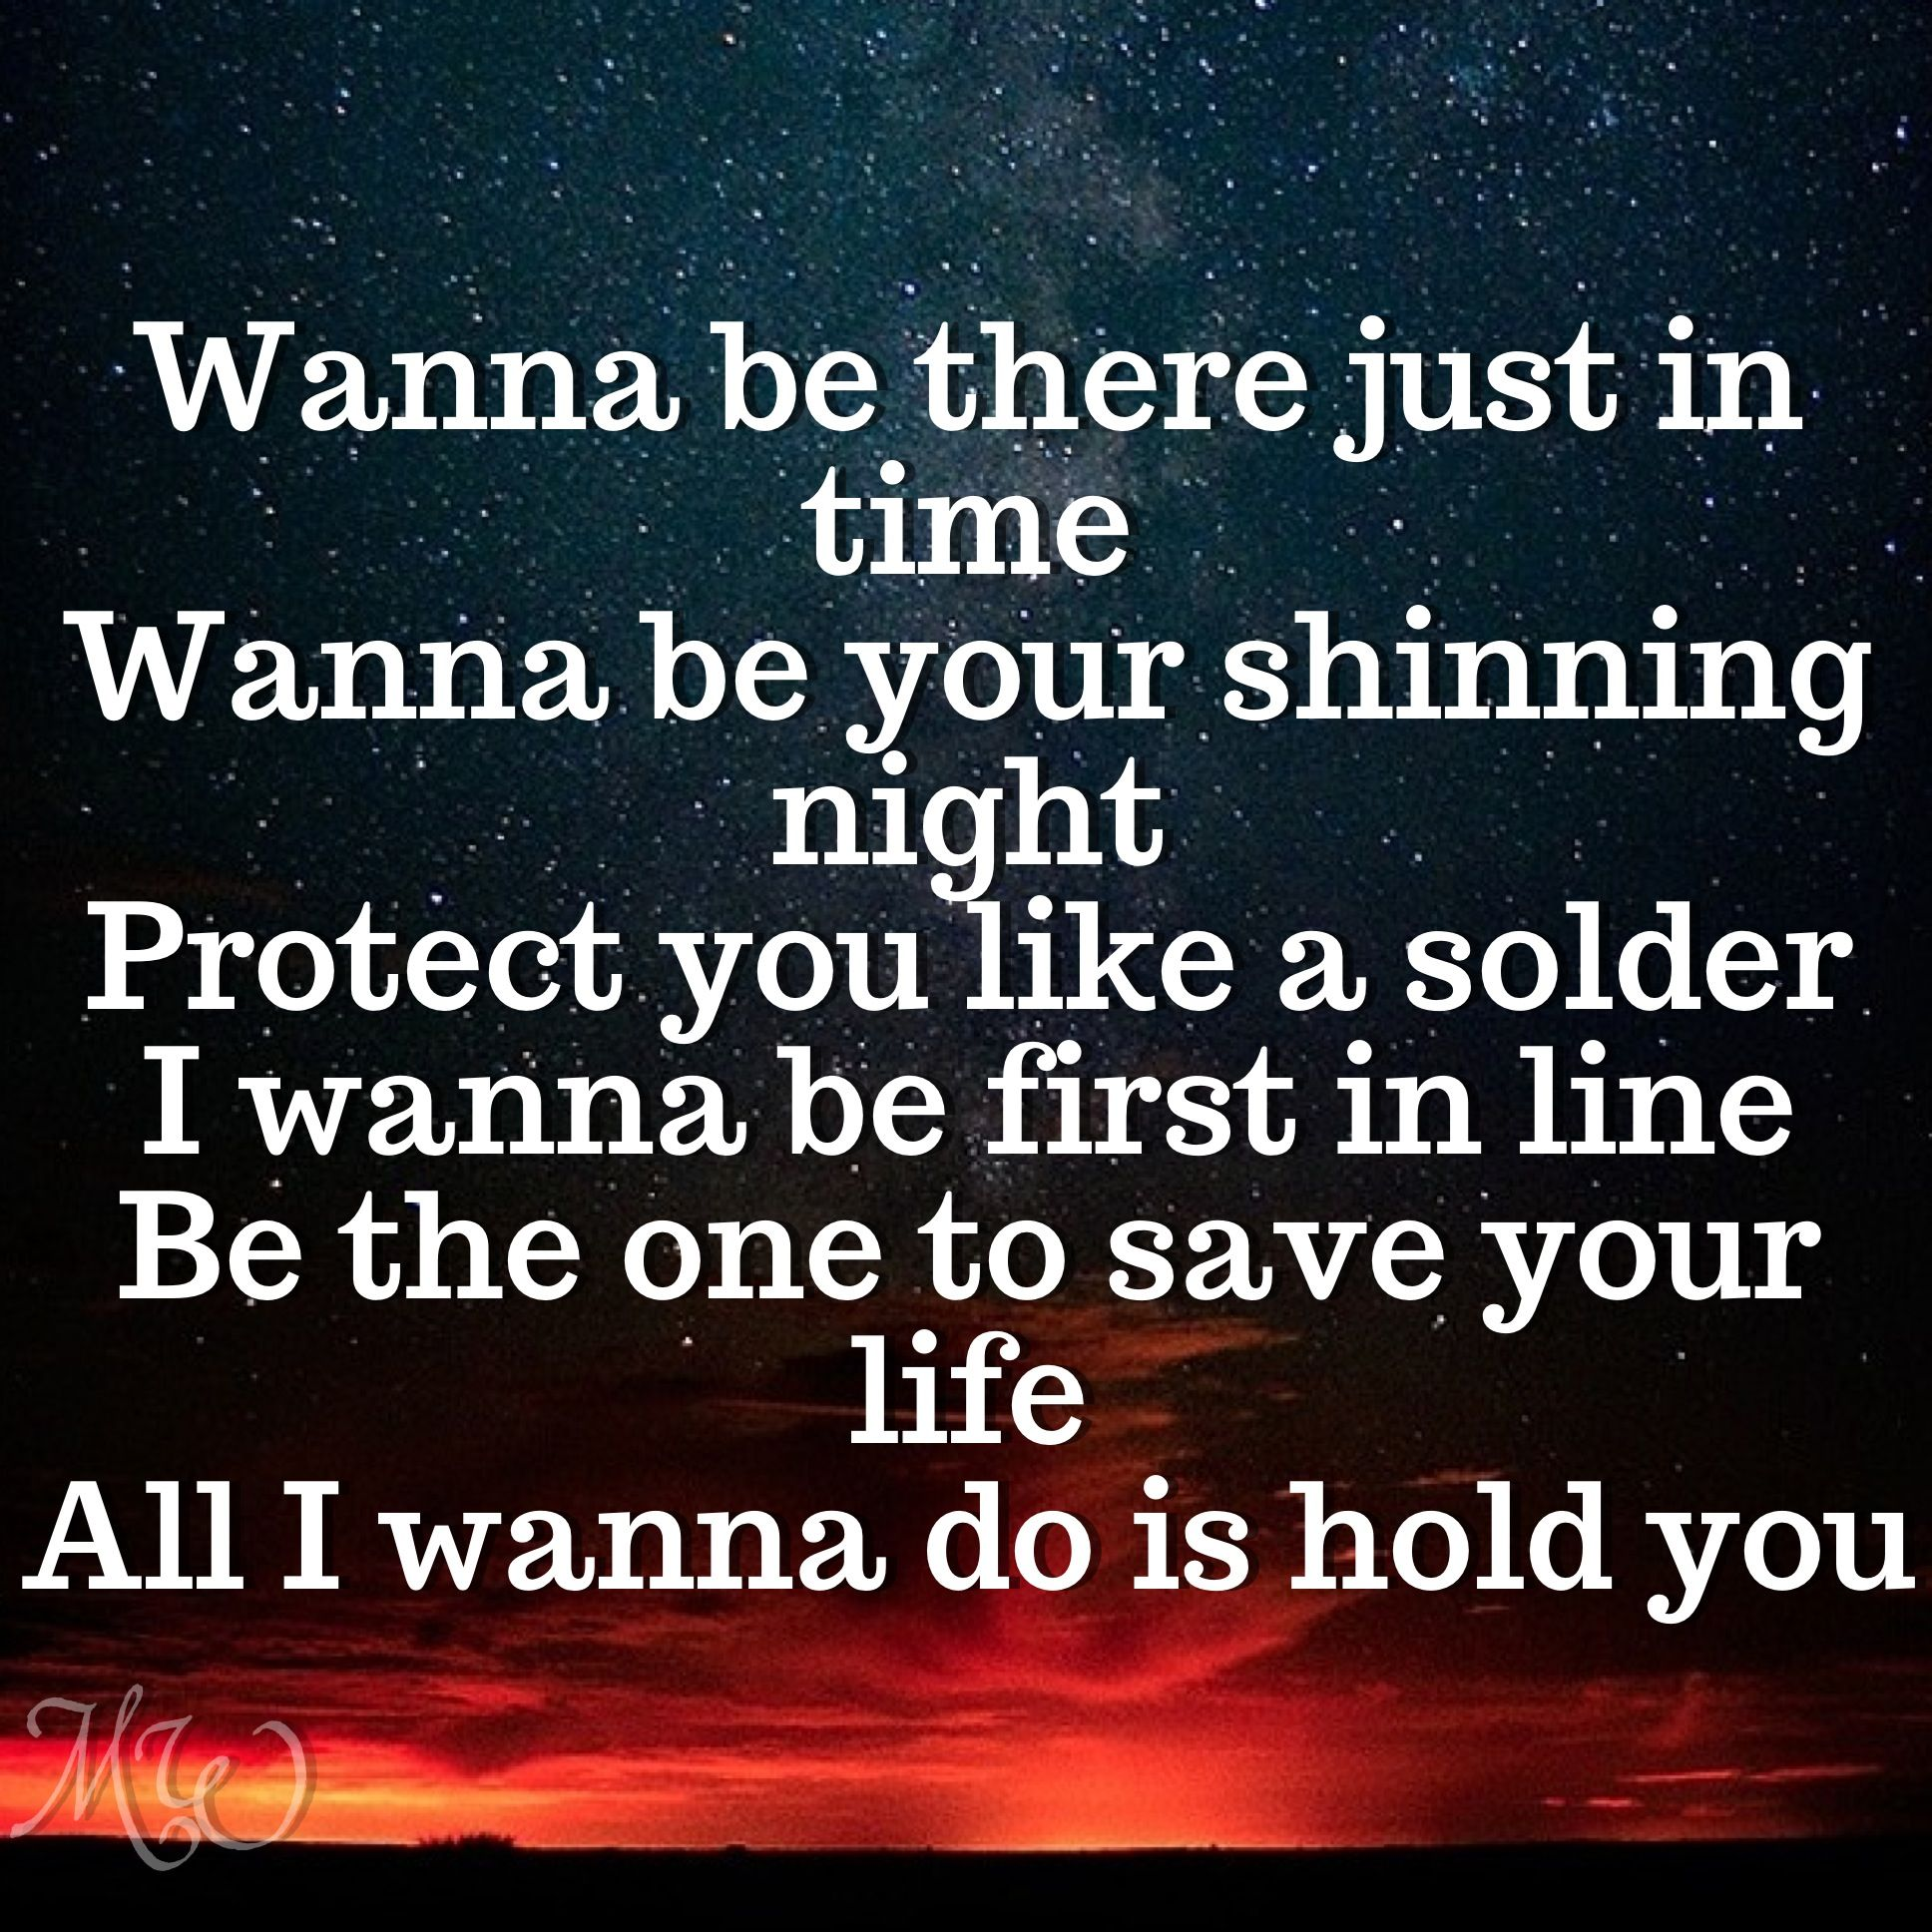 Solder lyrics Backstreet Boys In A World Like This 2013 ...Quotes From Song Lyrics 2013